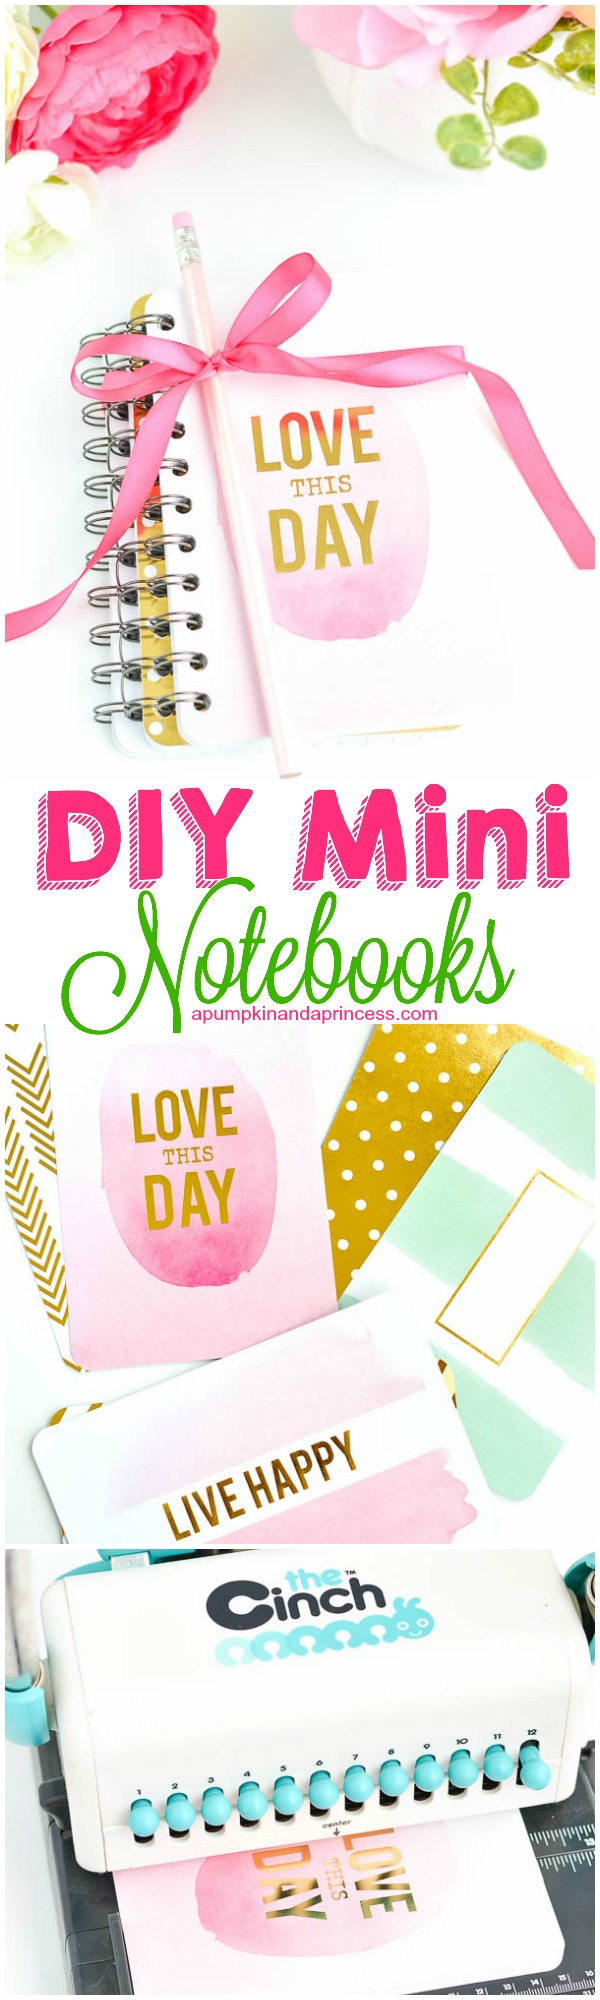 DIY Mini Notebooks